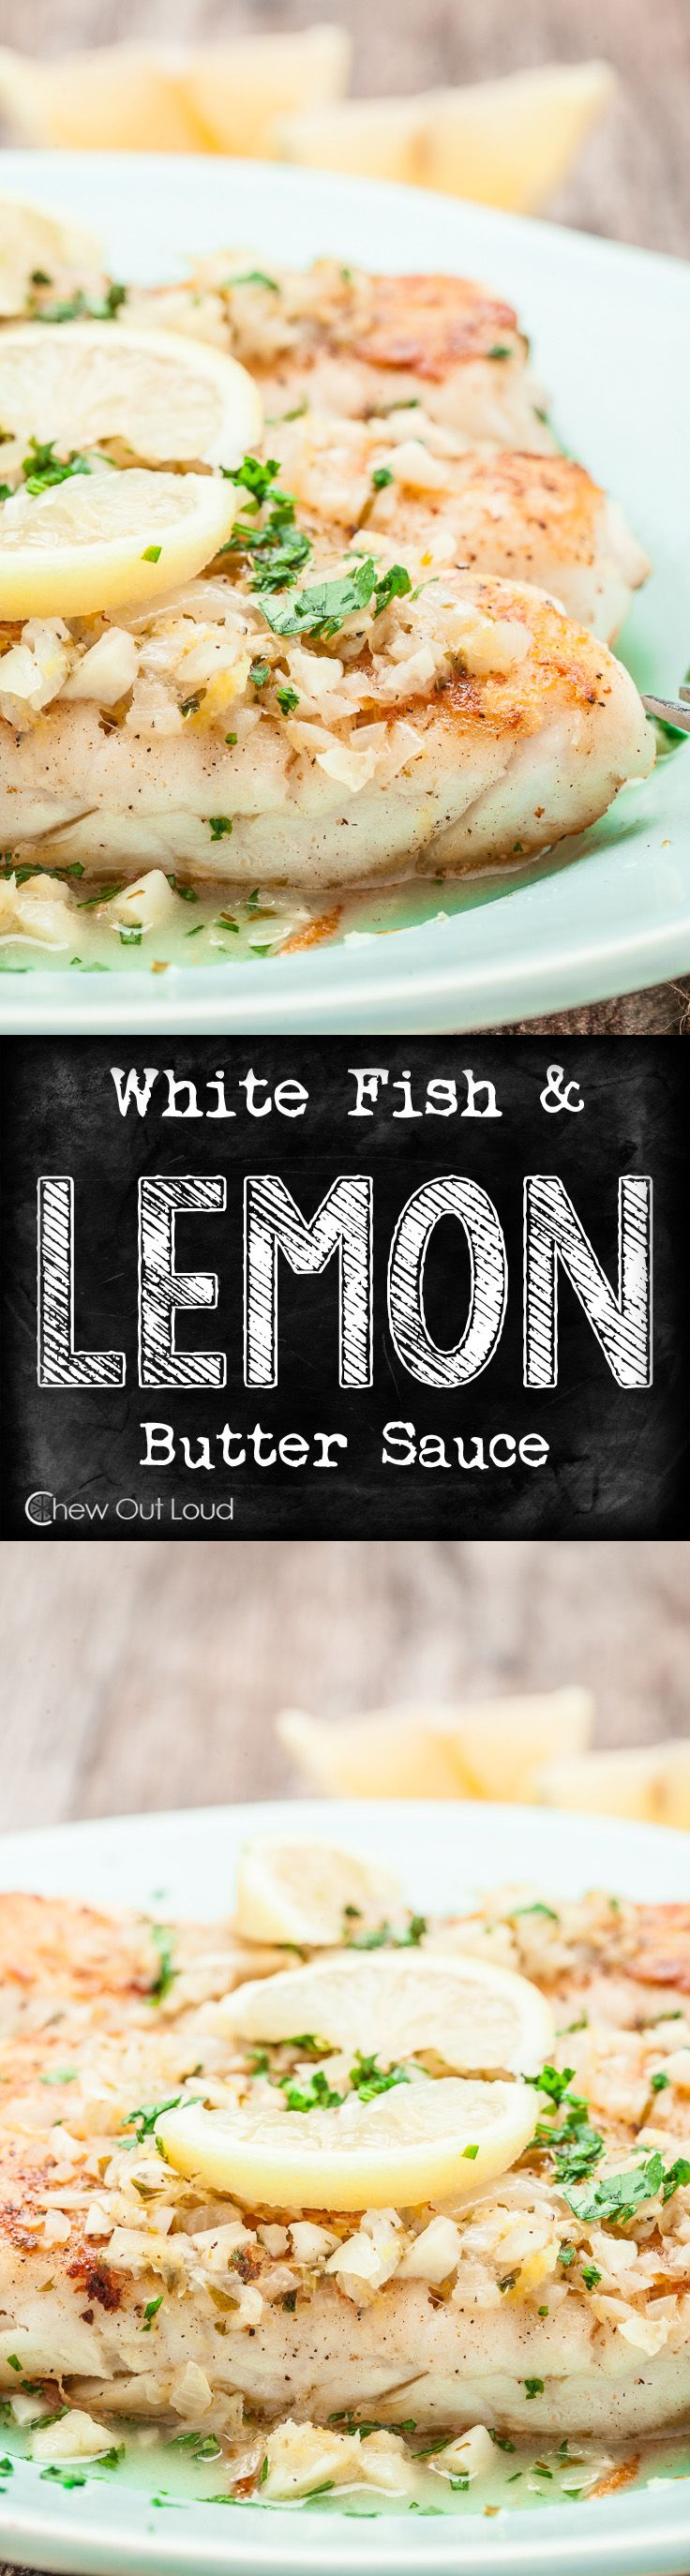 Scrumptious, Flaky, Tender White Fish...bathed in a glorious lemon butter sauce. Healthy, delicious fish in minutes. Lemon butter sauce is fab! www.chewoutloud.com